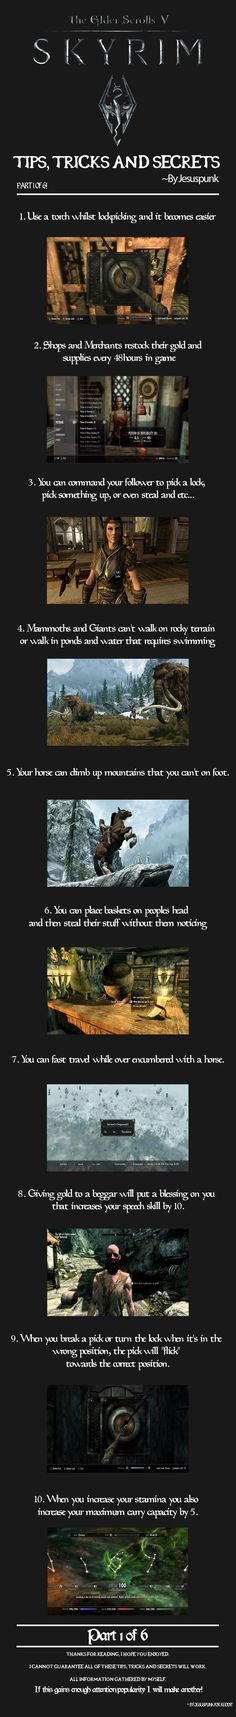 Tips, Tricks and Secrets for Skyrim